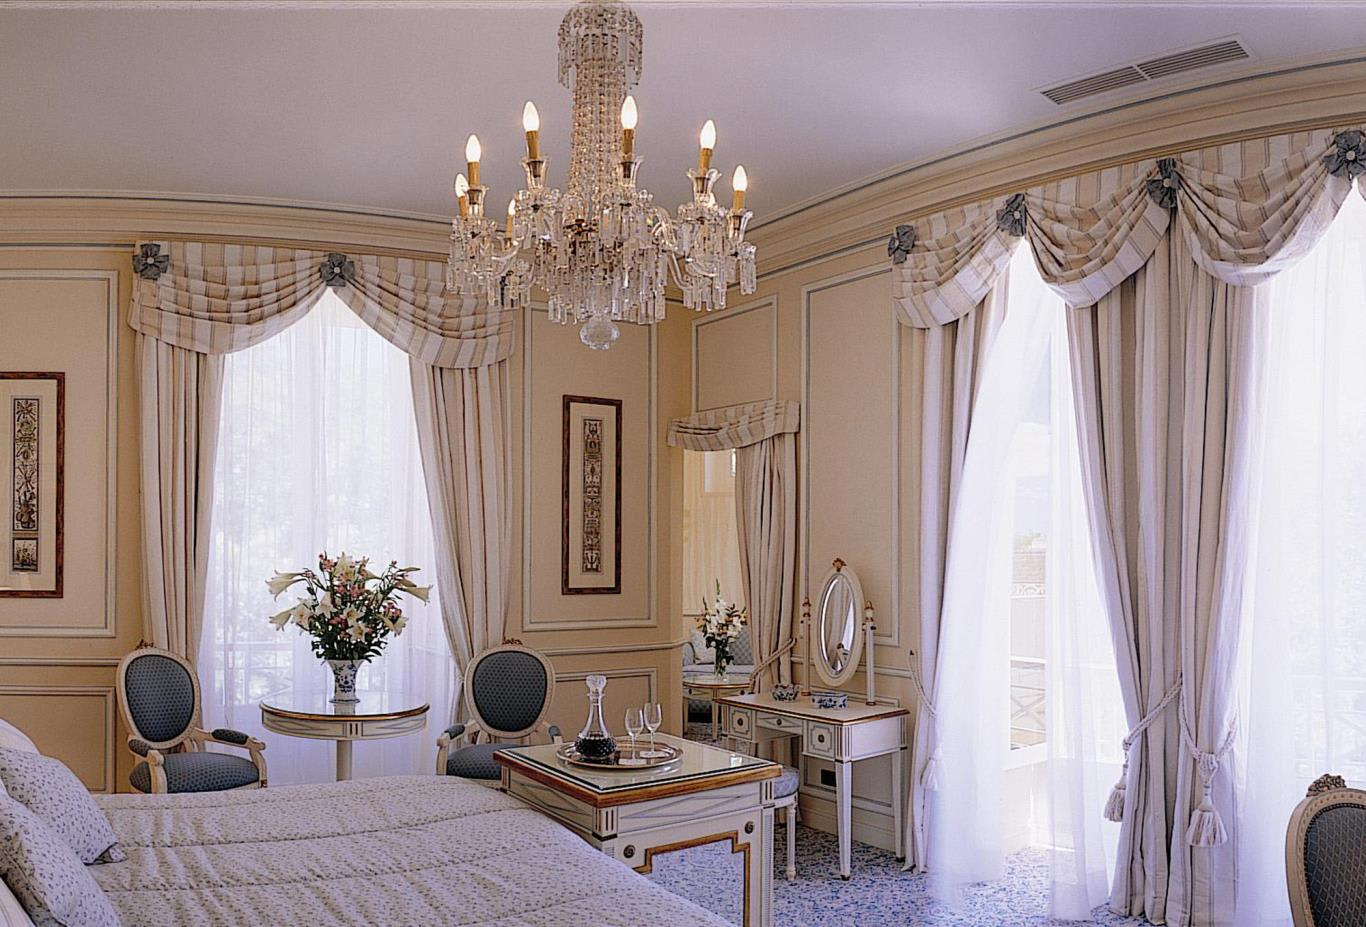 Palace Deluxe Room